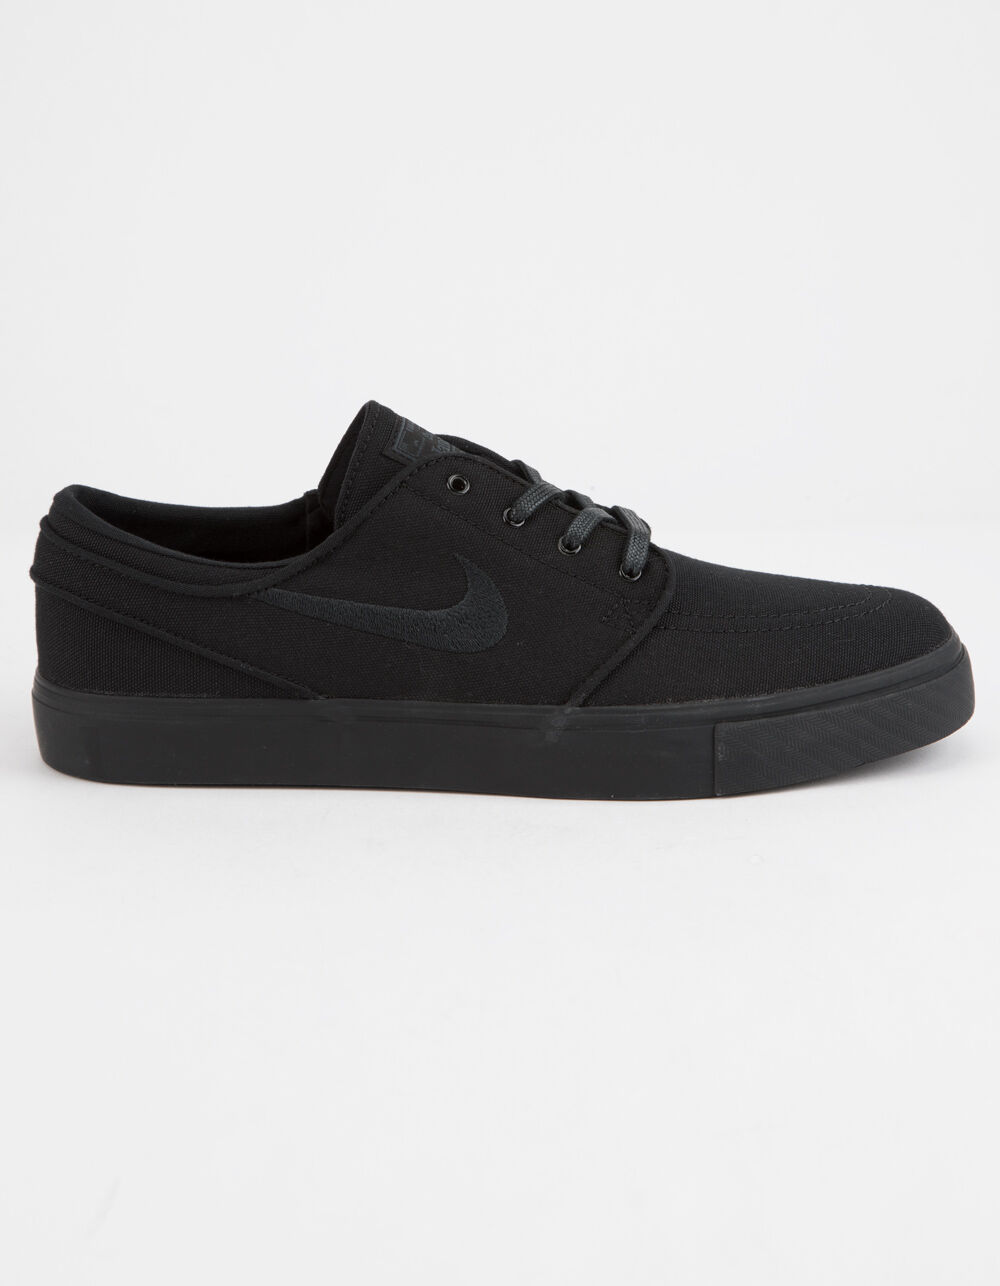 NIKE SB ZOOM STEFAN JANOSKI CANVAS BLACK & BLACK SHOES